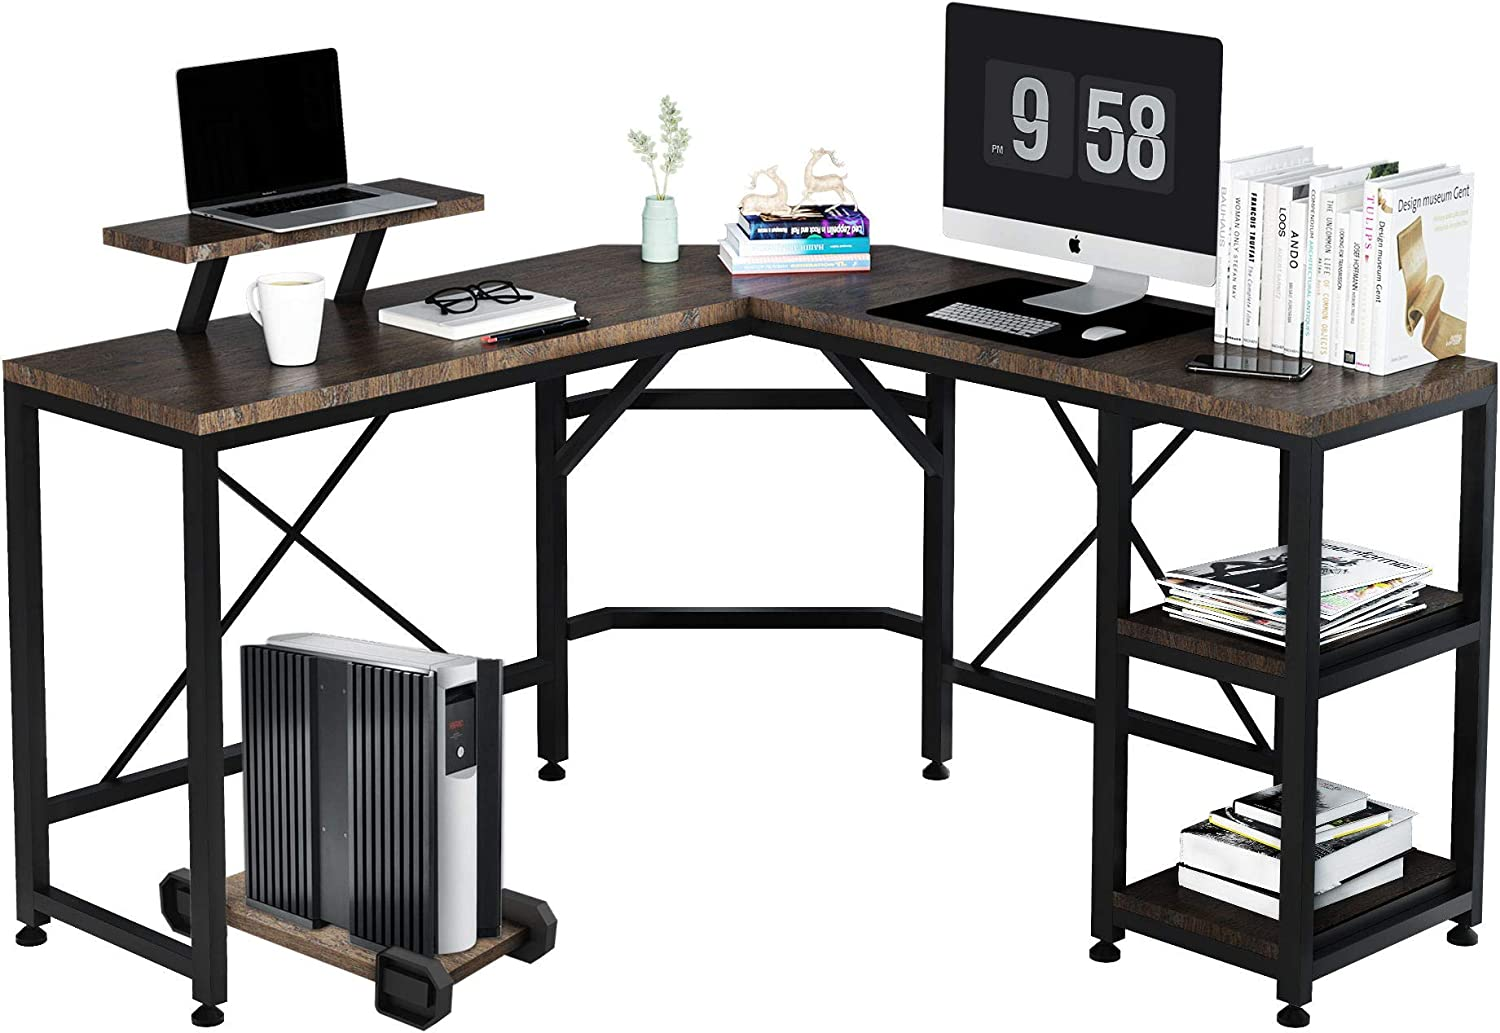 F&R 54'' L-Shaped Computer Desk, Gaming Corner Desk with Monitor Stand, 2 Storage Shelve and CPU Stand for Small Space, Home, Office, Writing, Workstation, Modern Simple Style, Easy to Assemble, Wood